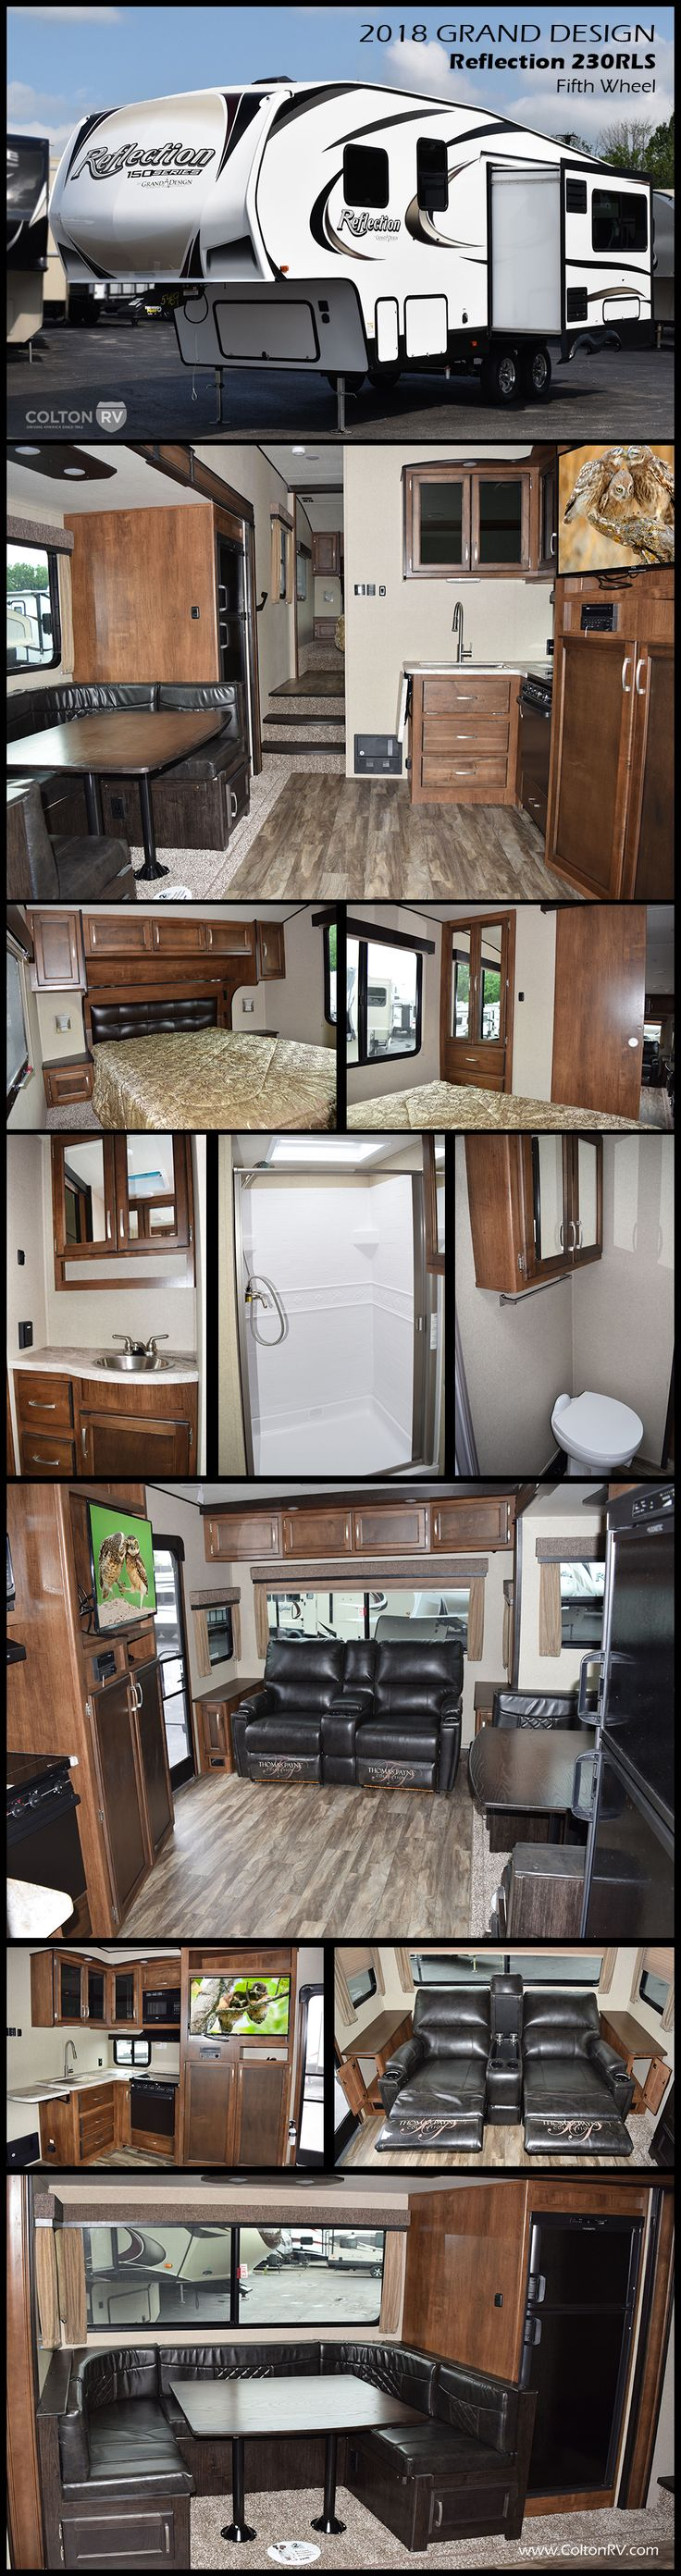 The Grand Design Reflection 150 Series Model 230RLS Fifth Wheel Delivers Maximum Living Without Maxing Out Your Truck This 230RL Offers A Rear